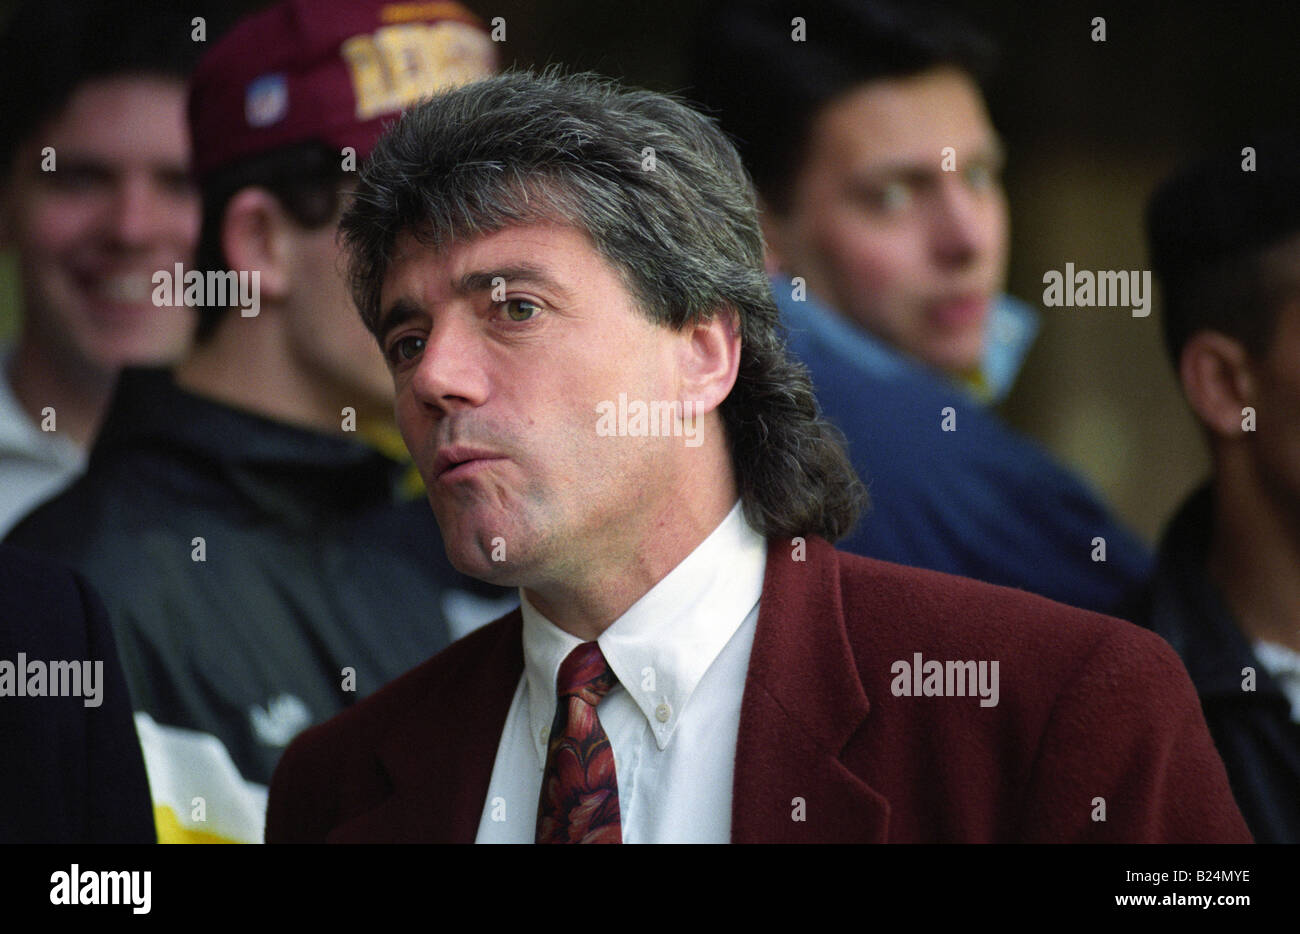 WOLVES V NEWCASTLE UNITED AT MOLINEUX 1 4 92  Newcastle Uniteds new manager Kevin Keegan Stock Photo